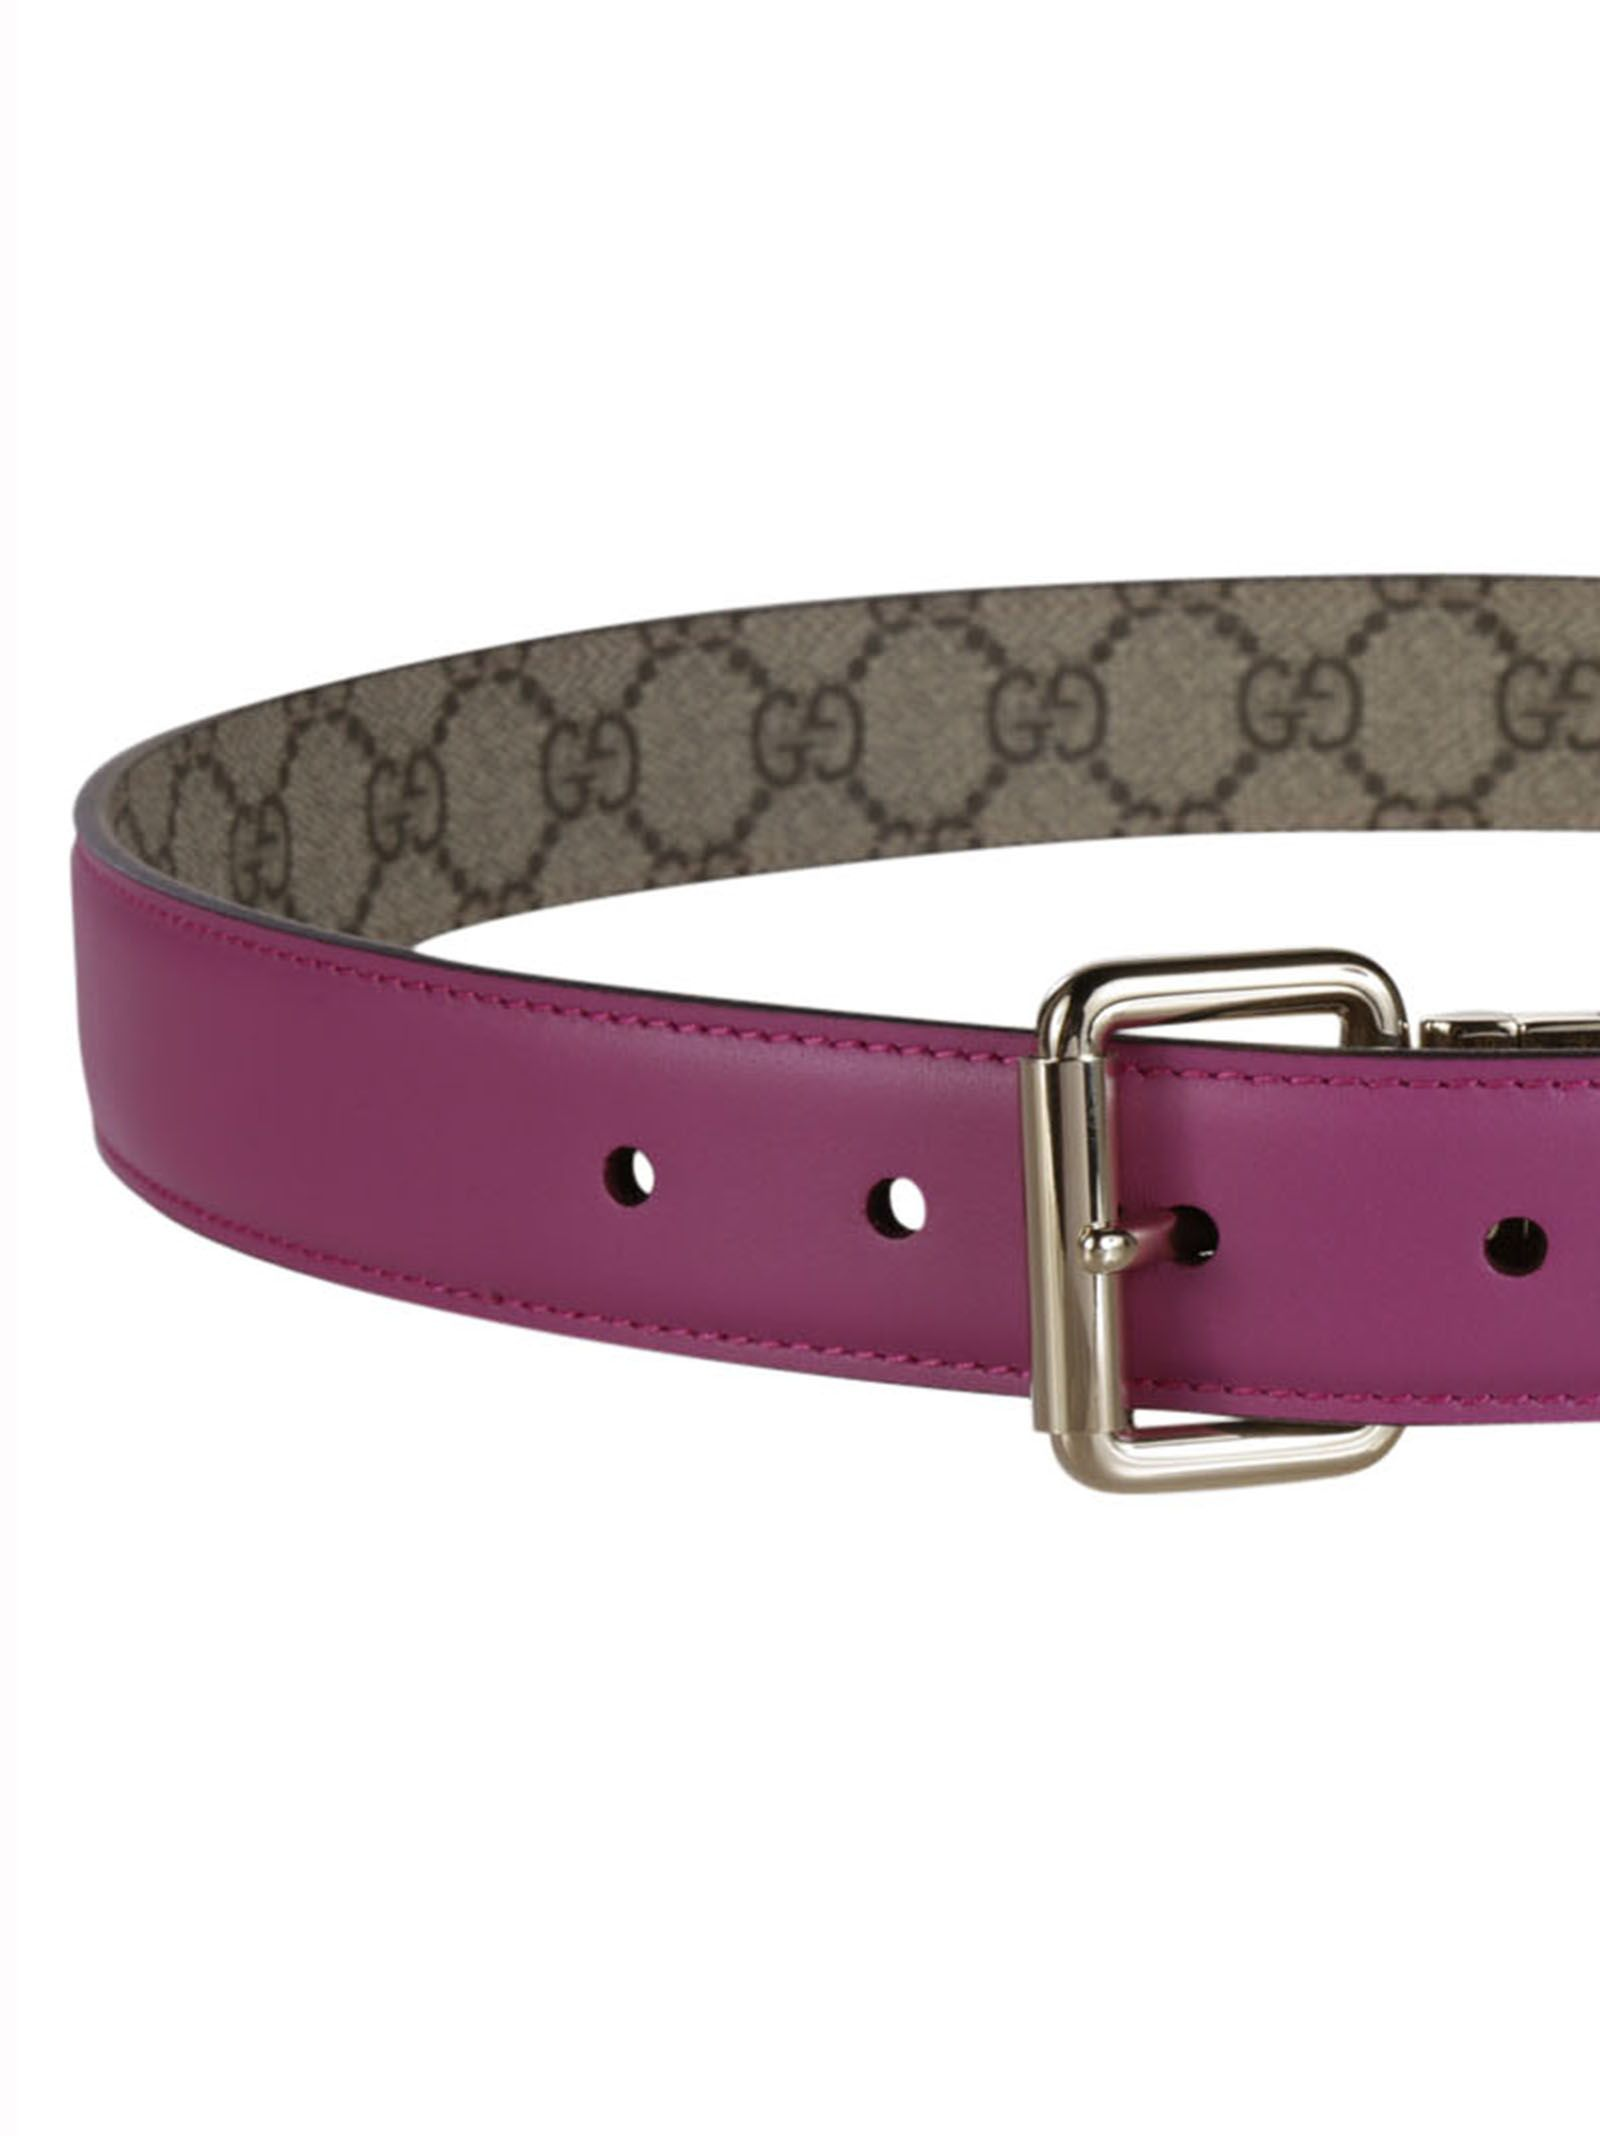 Gucci - Gucci Reversible Leather Belt - Pink, Women's ...